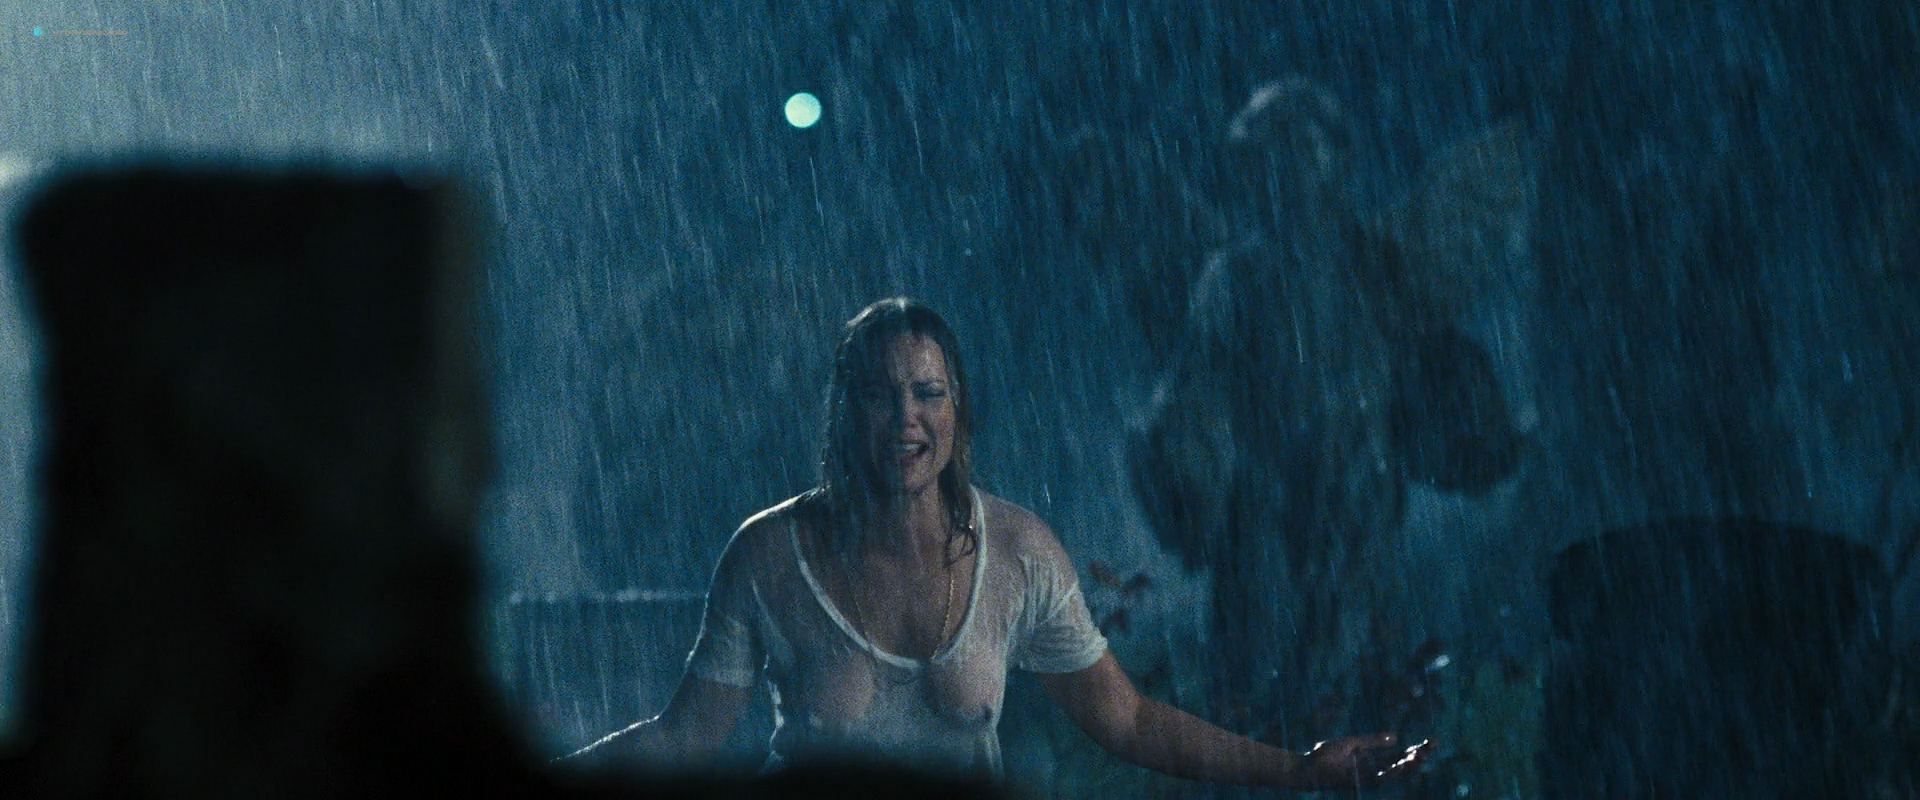 0110164402218_00_Olga-Kurylenko-hot-Abbie-Cornish-see-through-and-Christine-Marzano-nude-–-Seven-Psychopaths-2012-HD-1080p-10.jpg